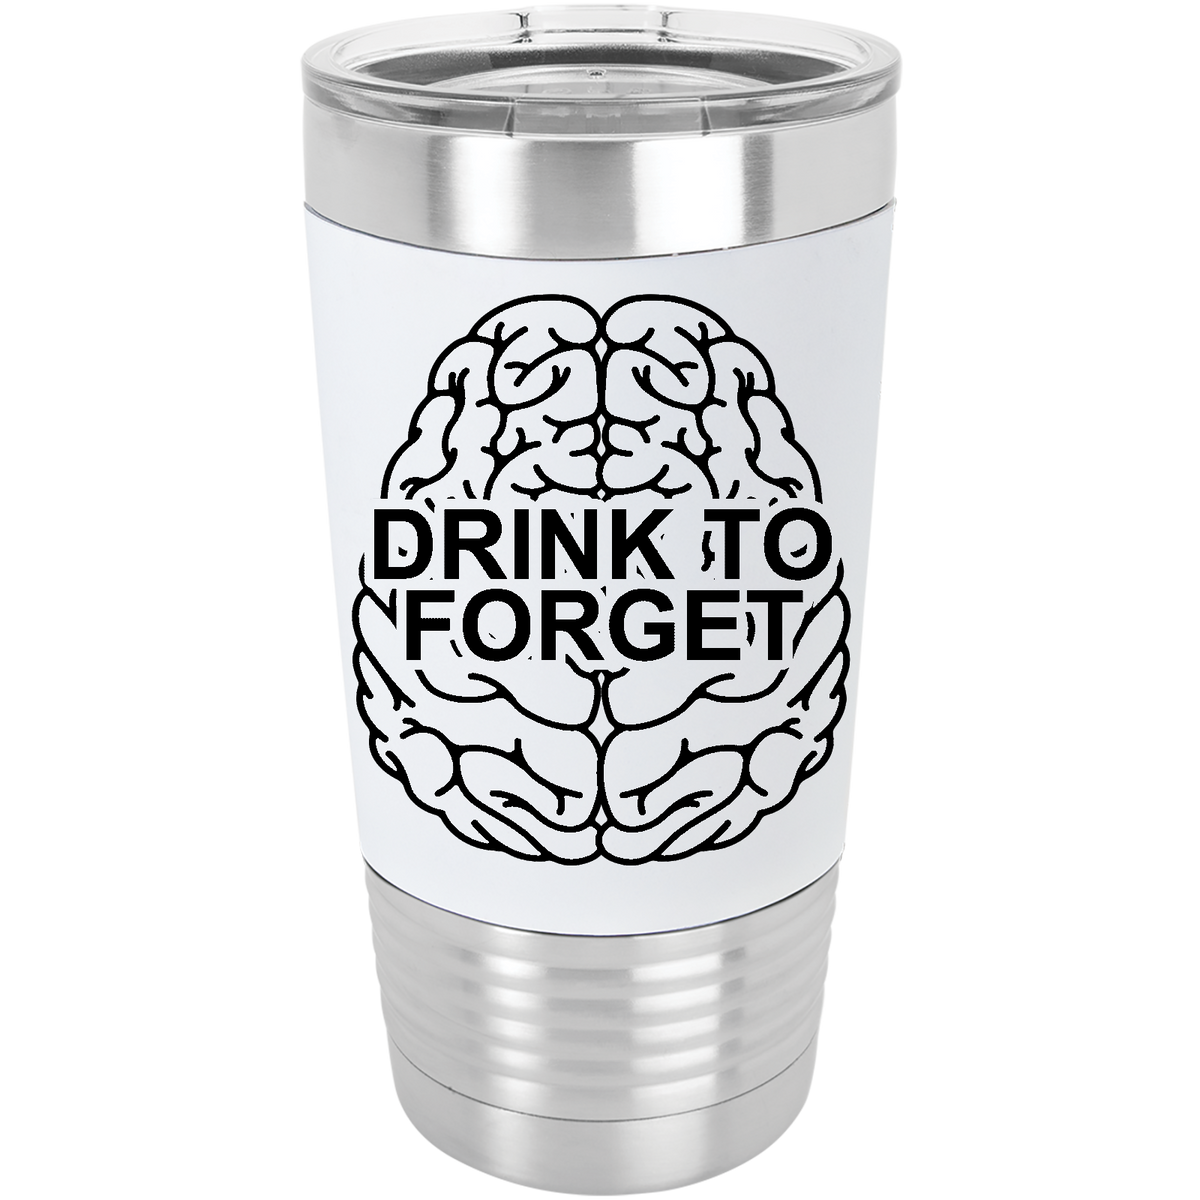 Drink to forget - 20oz. Silicone Grip Tumbler with Clear Lid